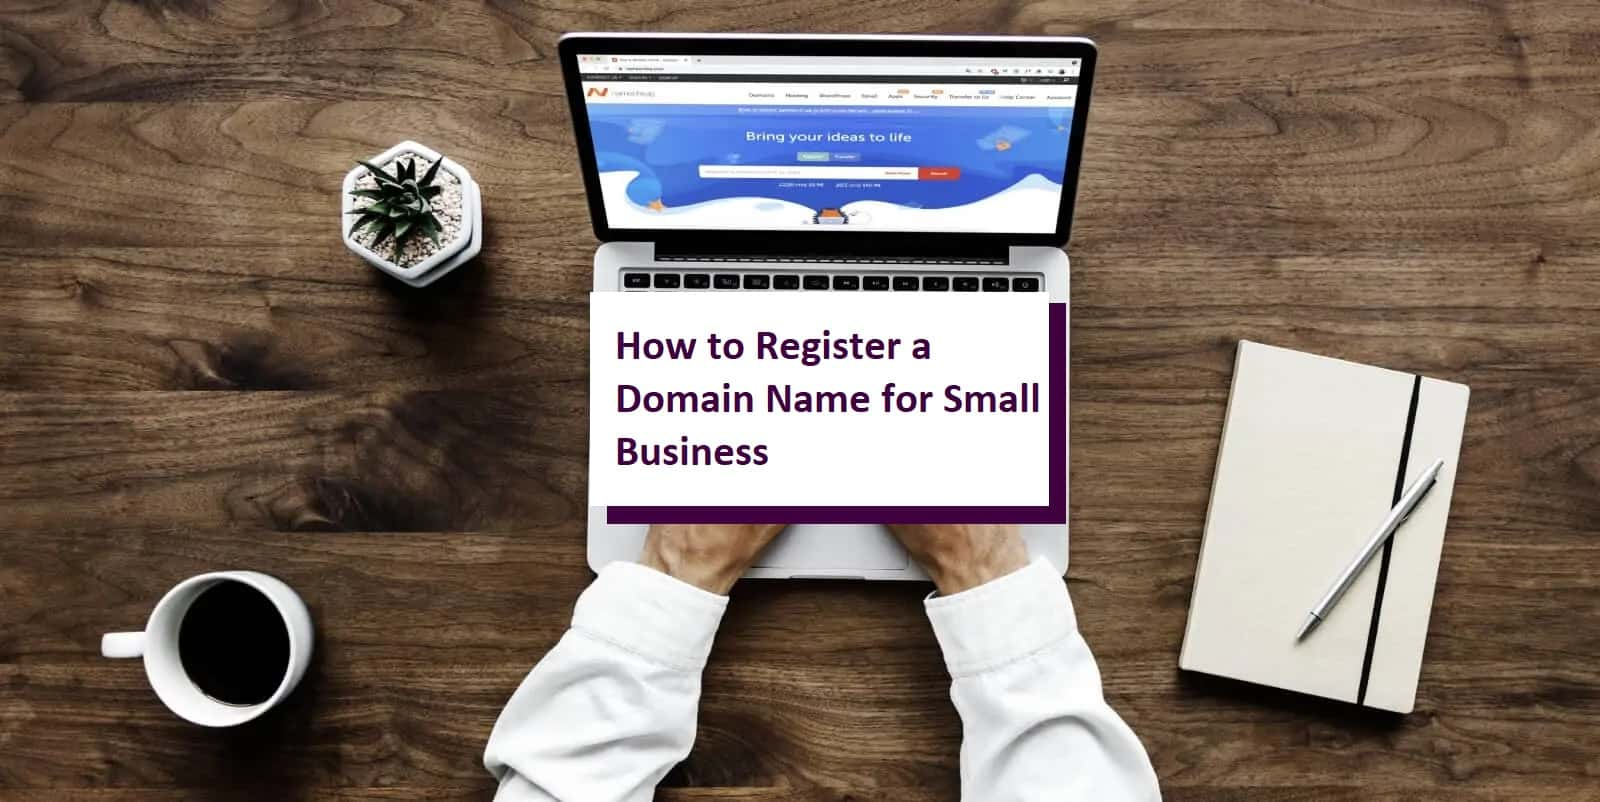 How to Register a Domain Name for Small Business